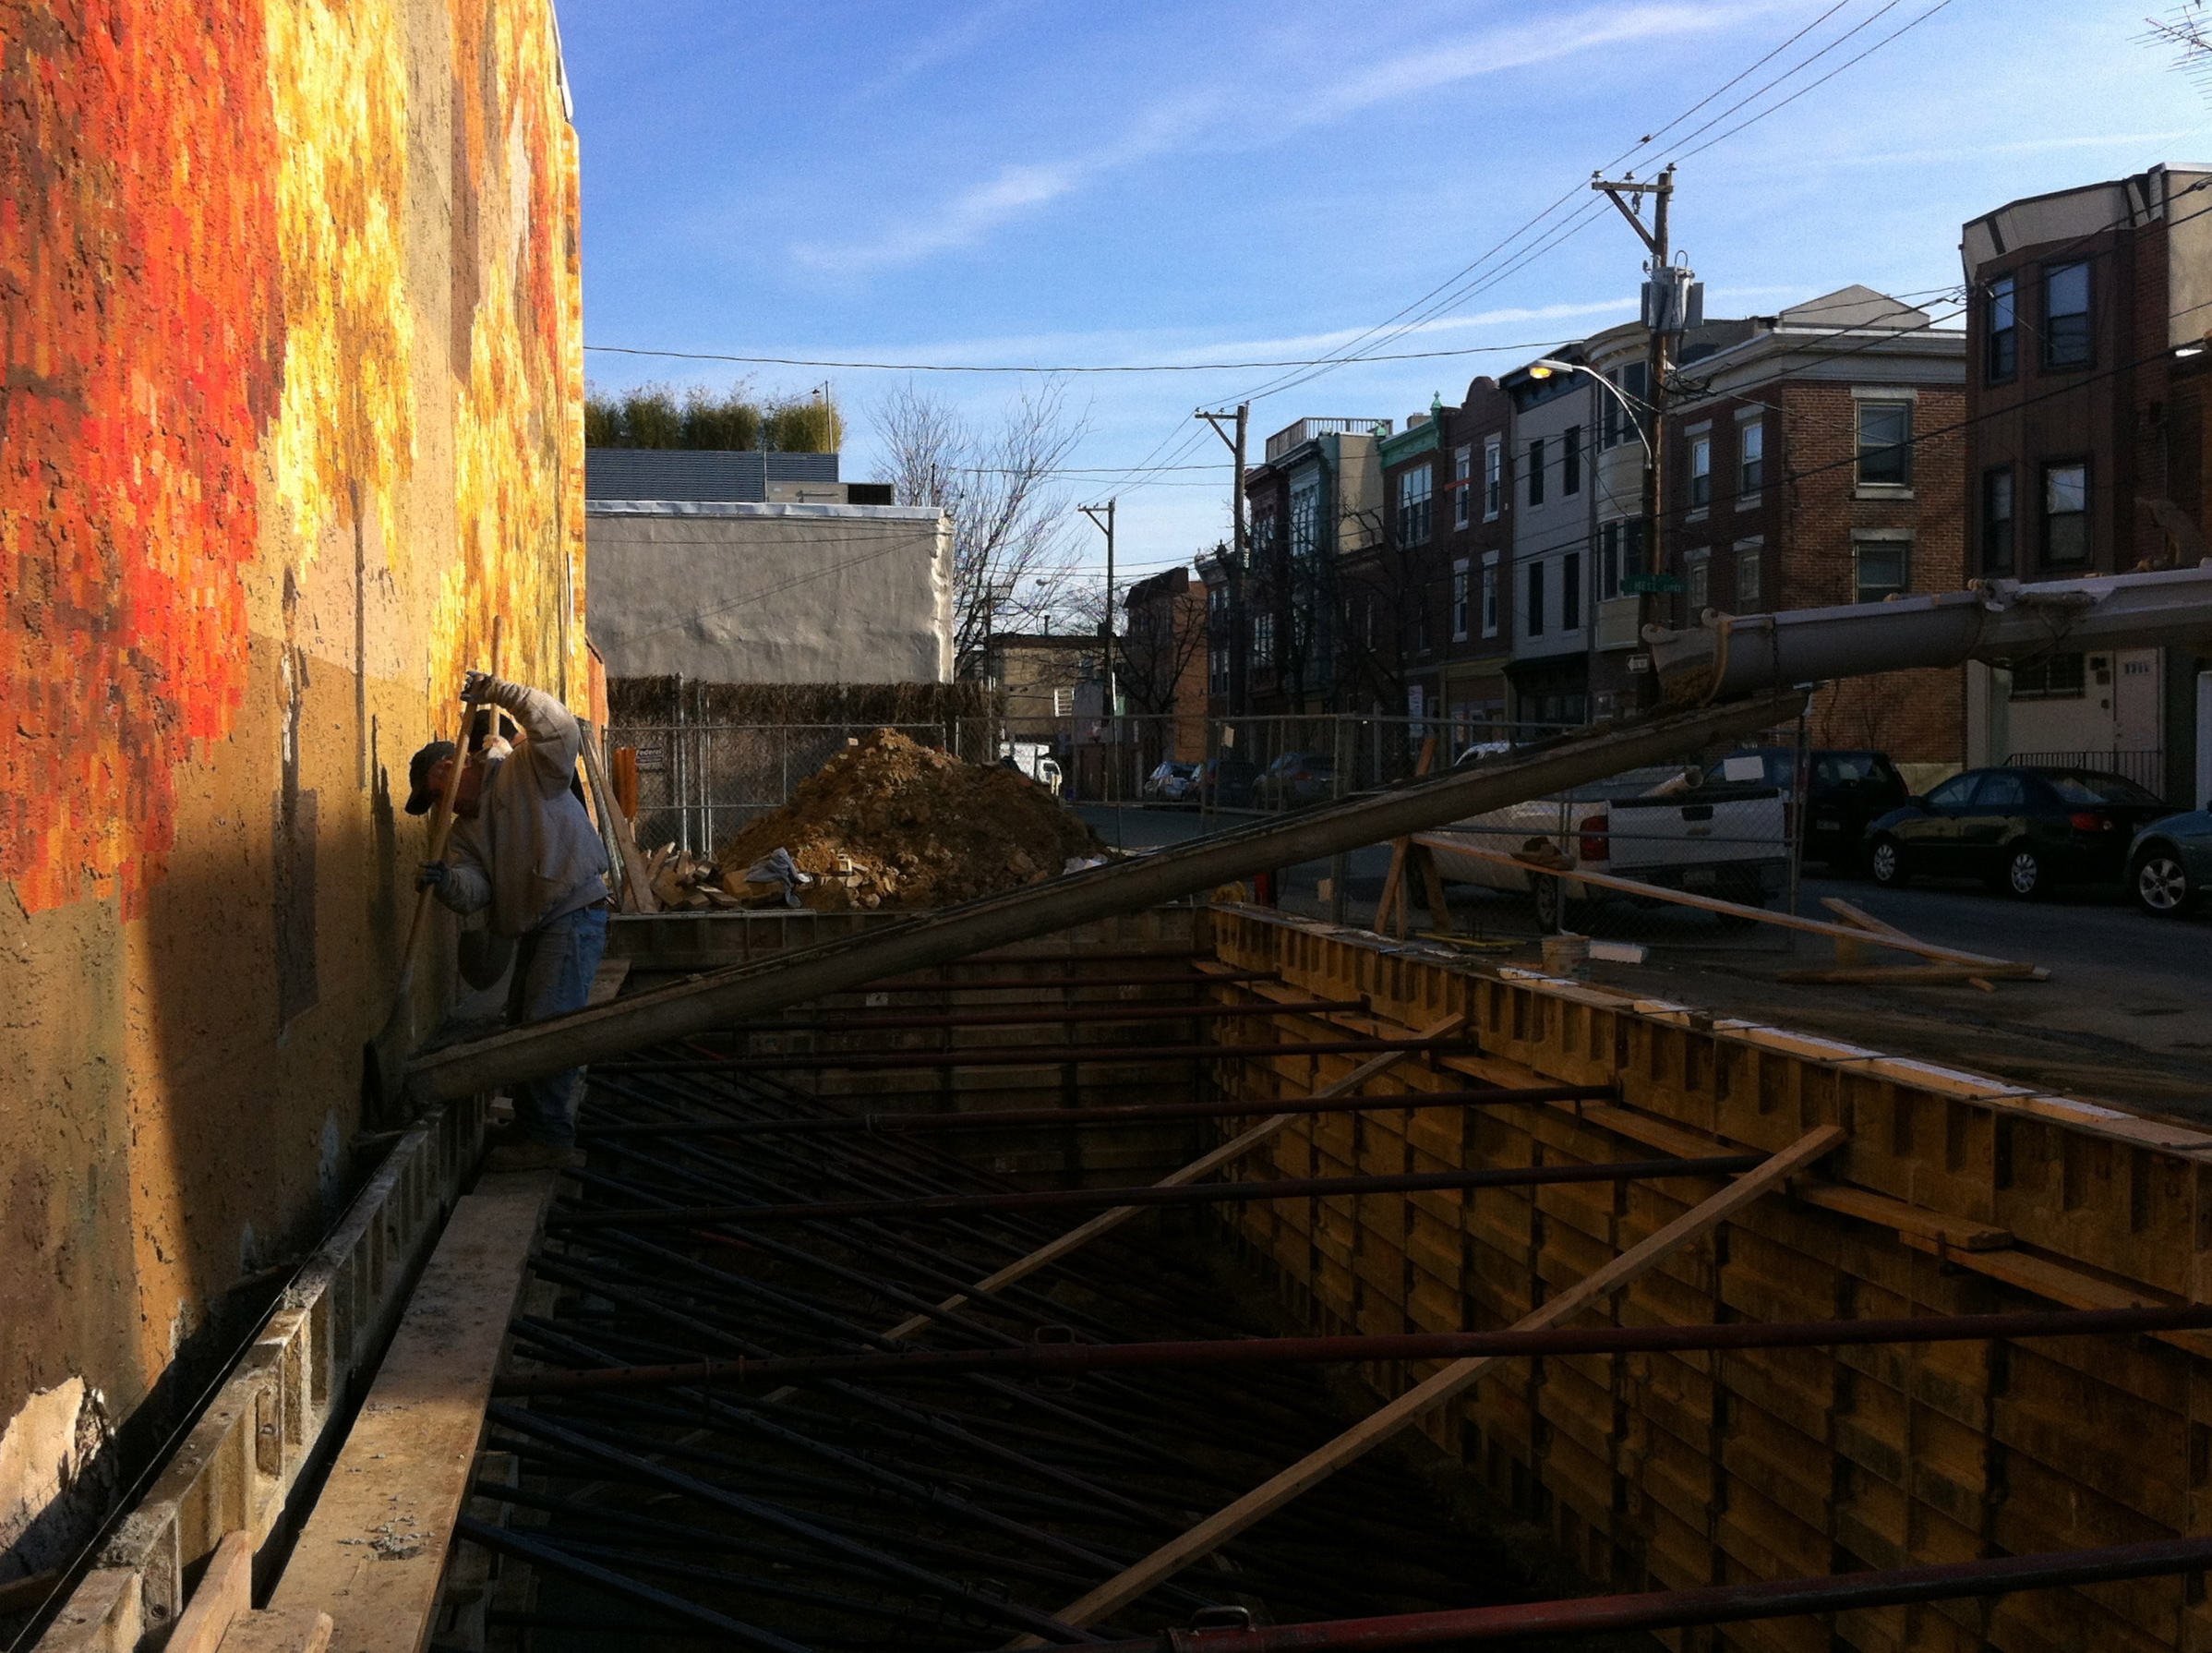 Construction of the new rowhouse at 9th and Bainbridge next to Autumn in December 2011.